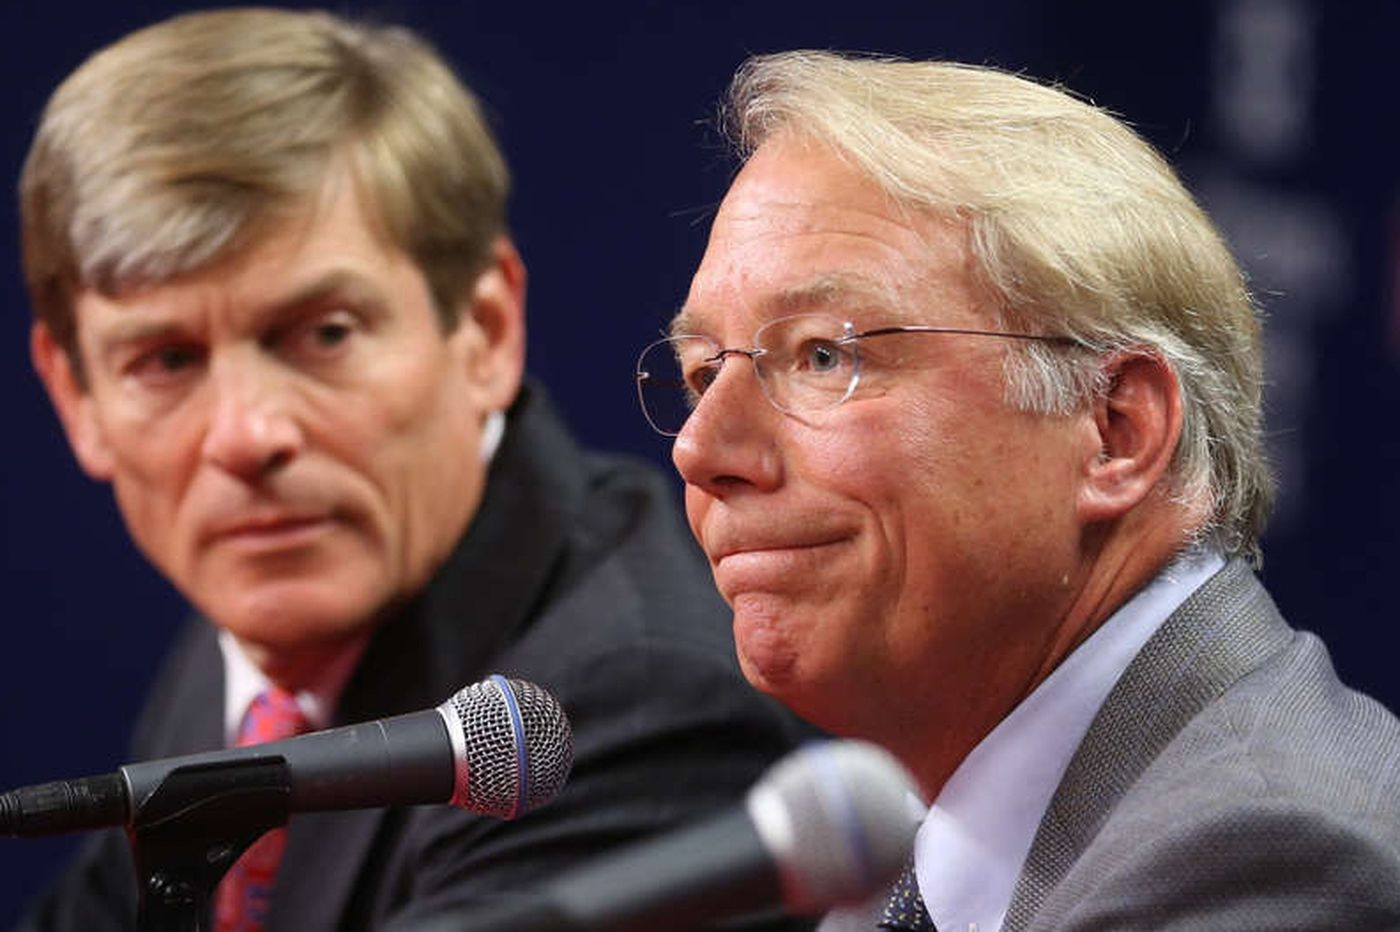 Phillies' downfall followed club president Andy MacPhail's midseason complacency | Extra Innings